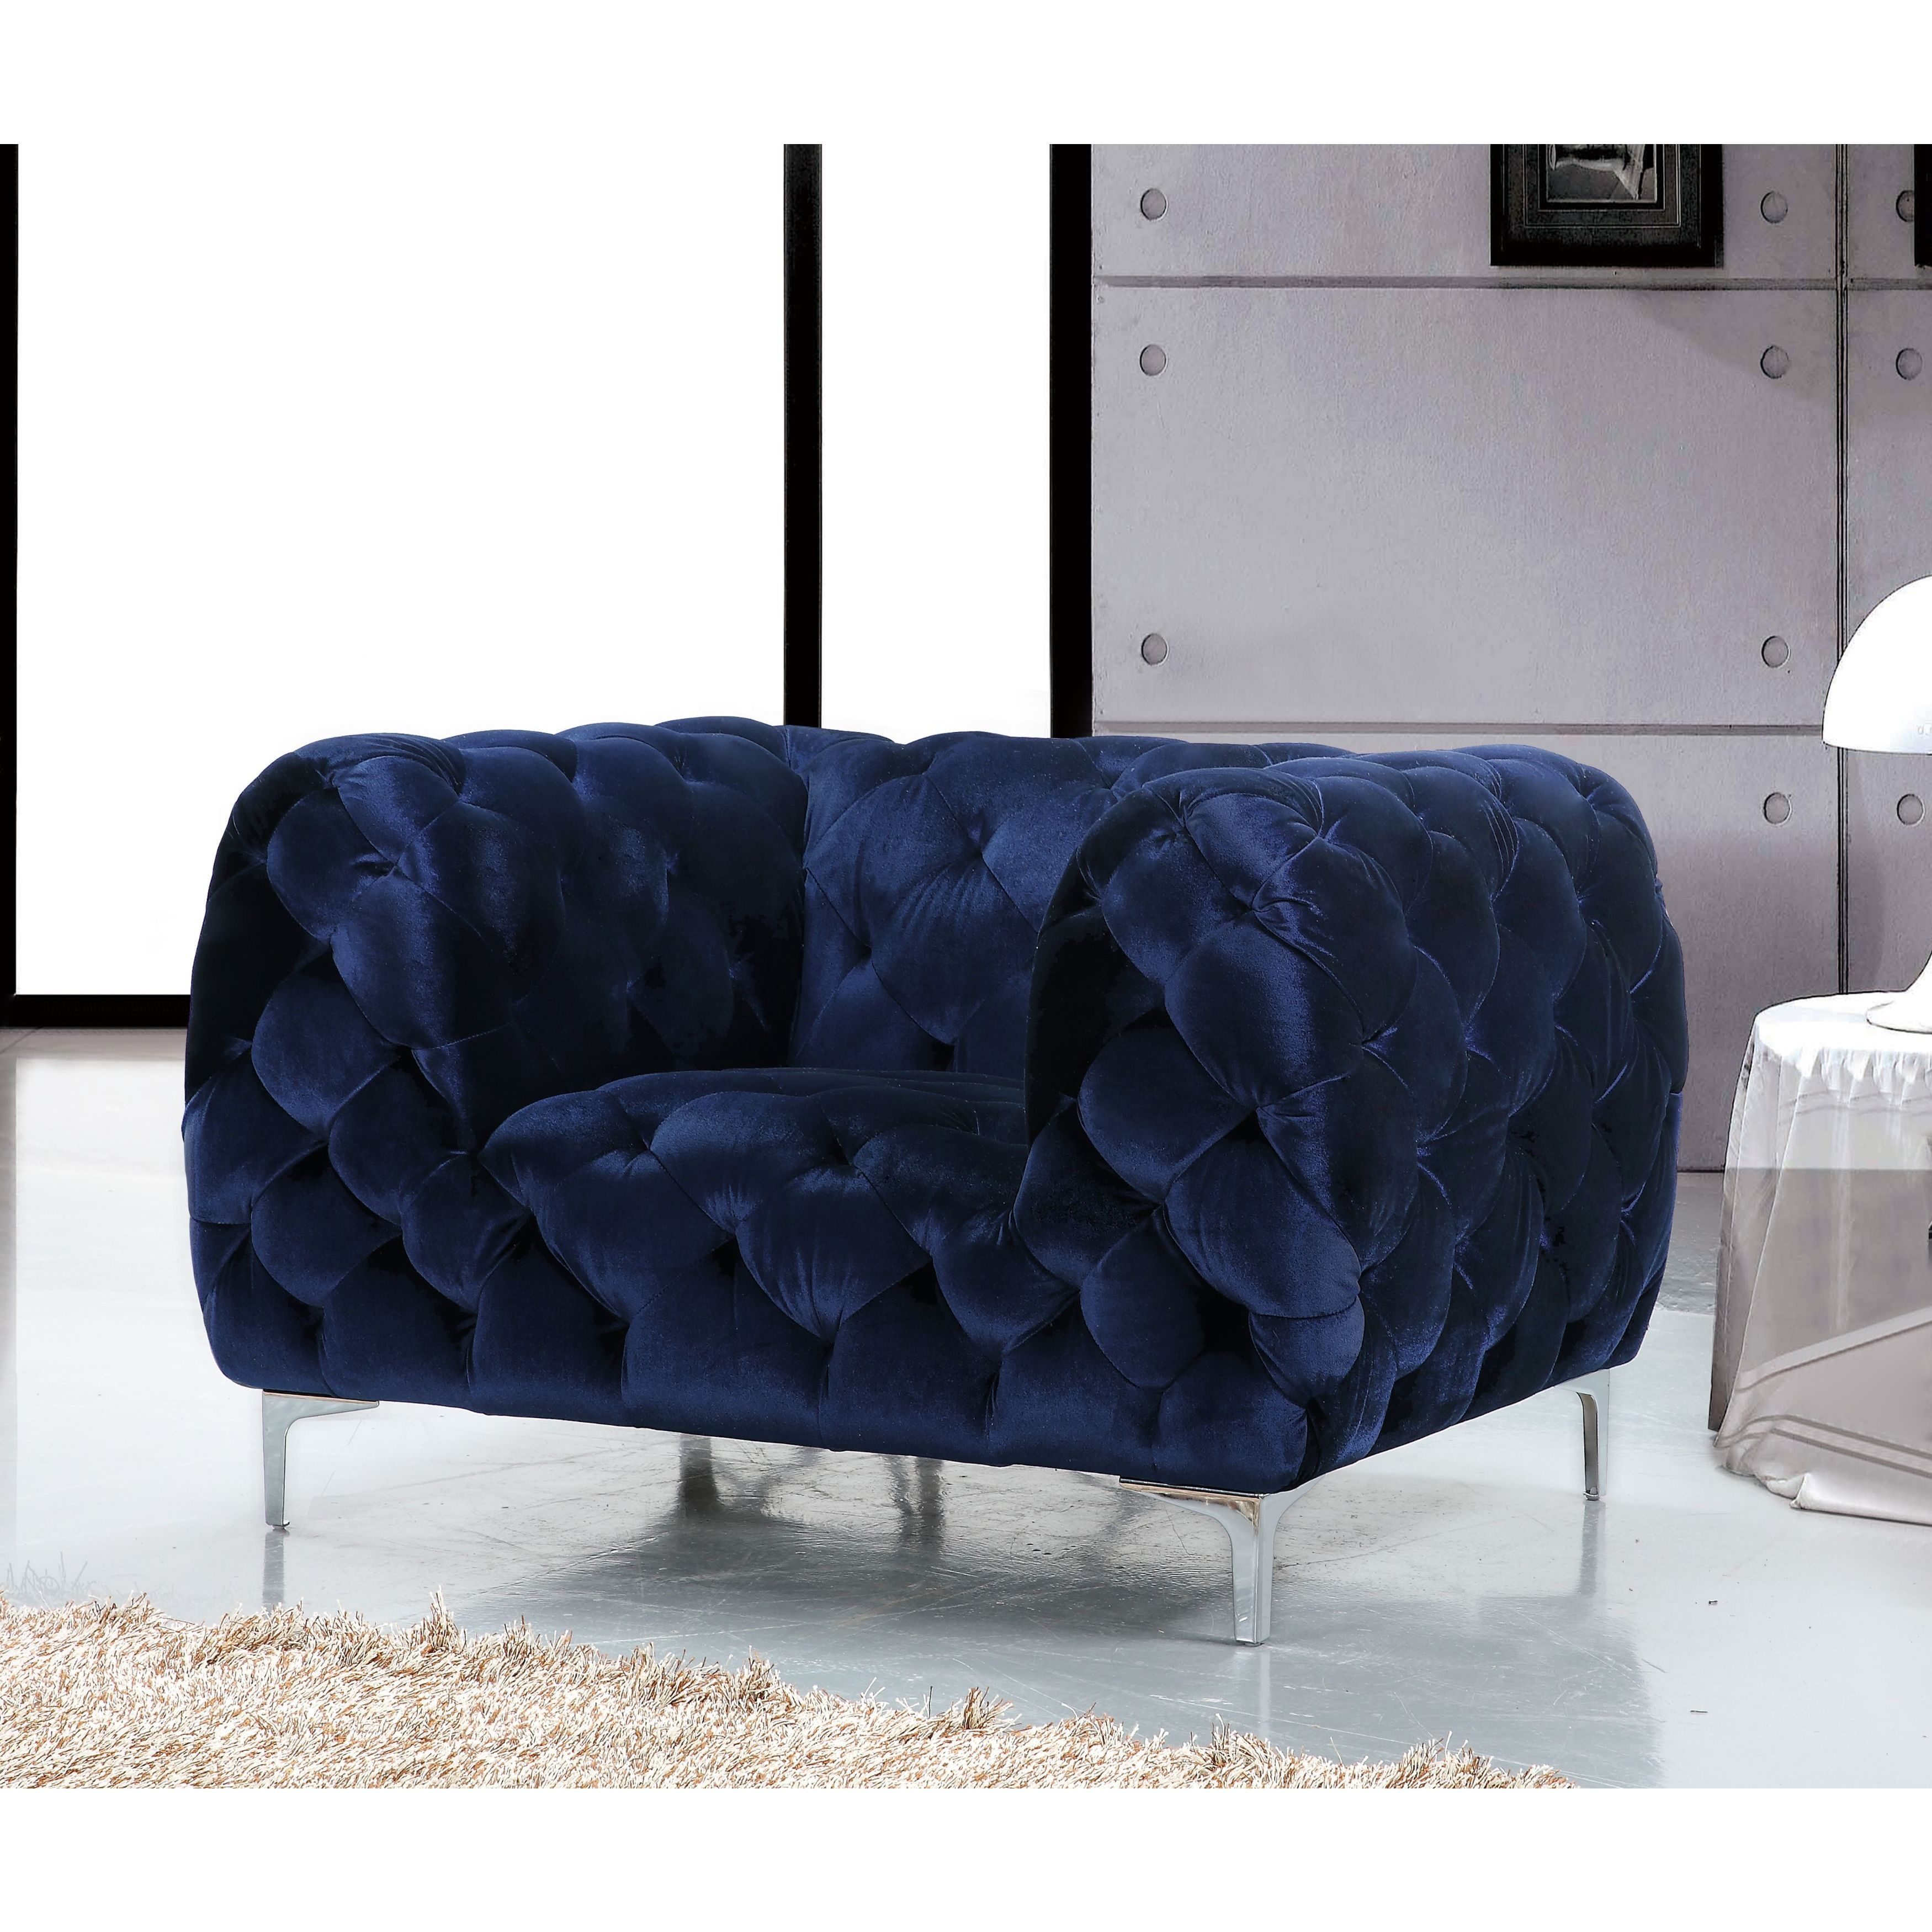 Shop Meridian Mercer Blue Velvet Tufted Chair – Free Shipping Today Pertaining To Mercer Foam Oversized Sofa Chairs (View 8 of 25)